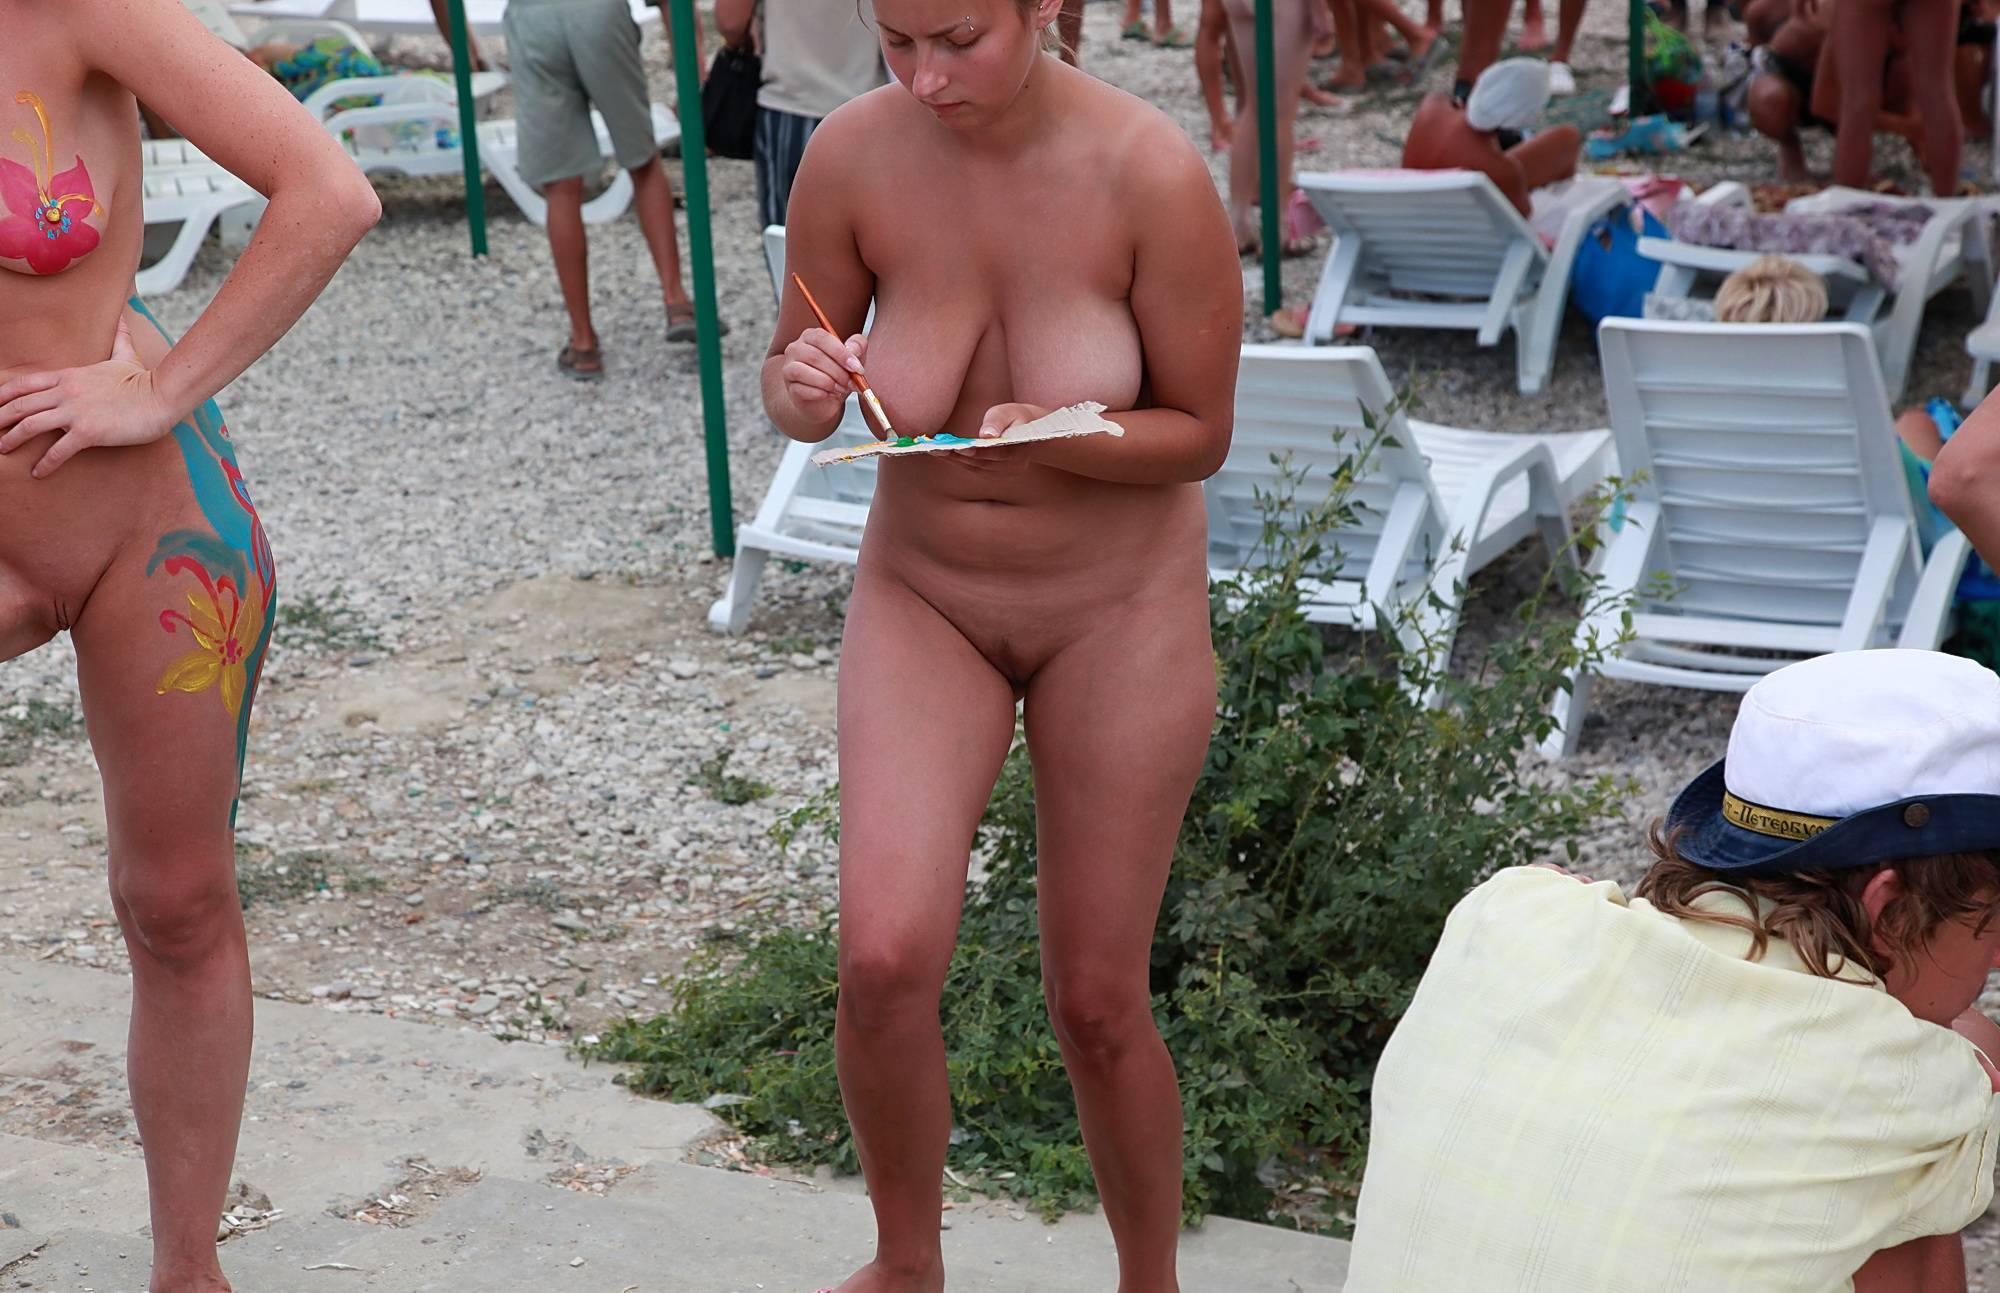 Nudist Pics Calmly Relaxing Outside - 2